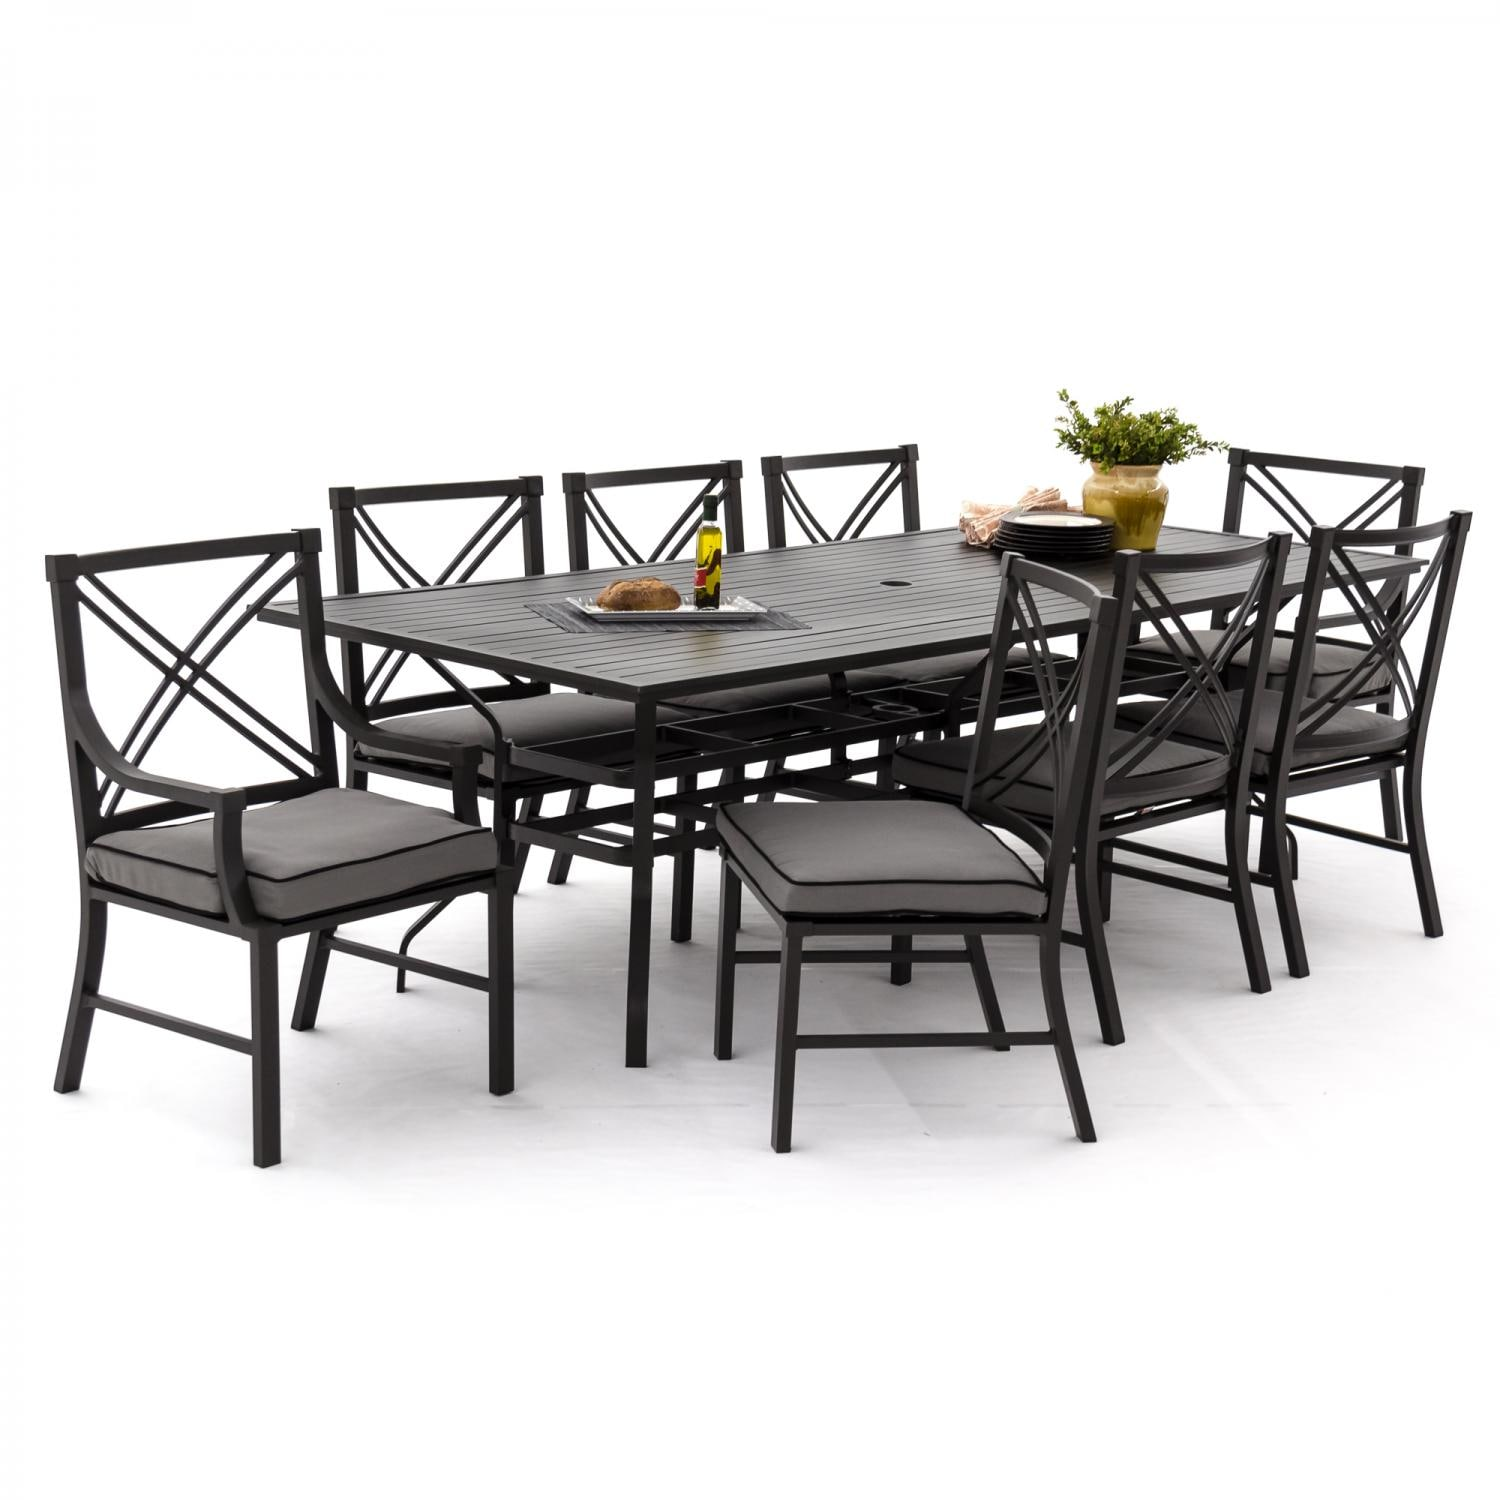 Audubon 9 Piece Aluminum Patio Dining Set With 6 Side Chairs And  Rectangular Table   Canvas Charcoal Angled View